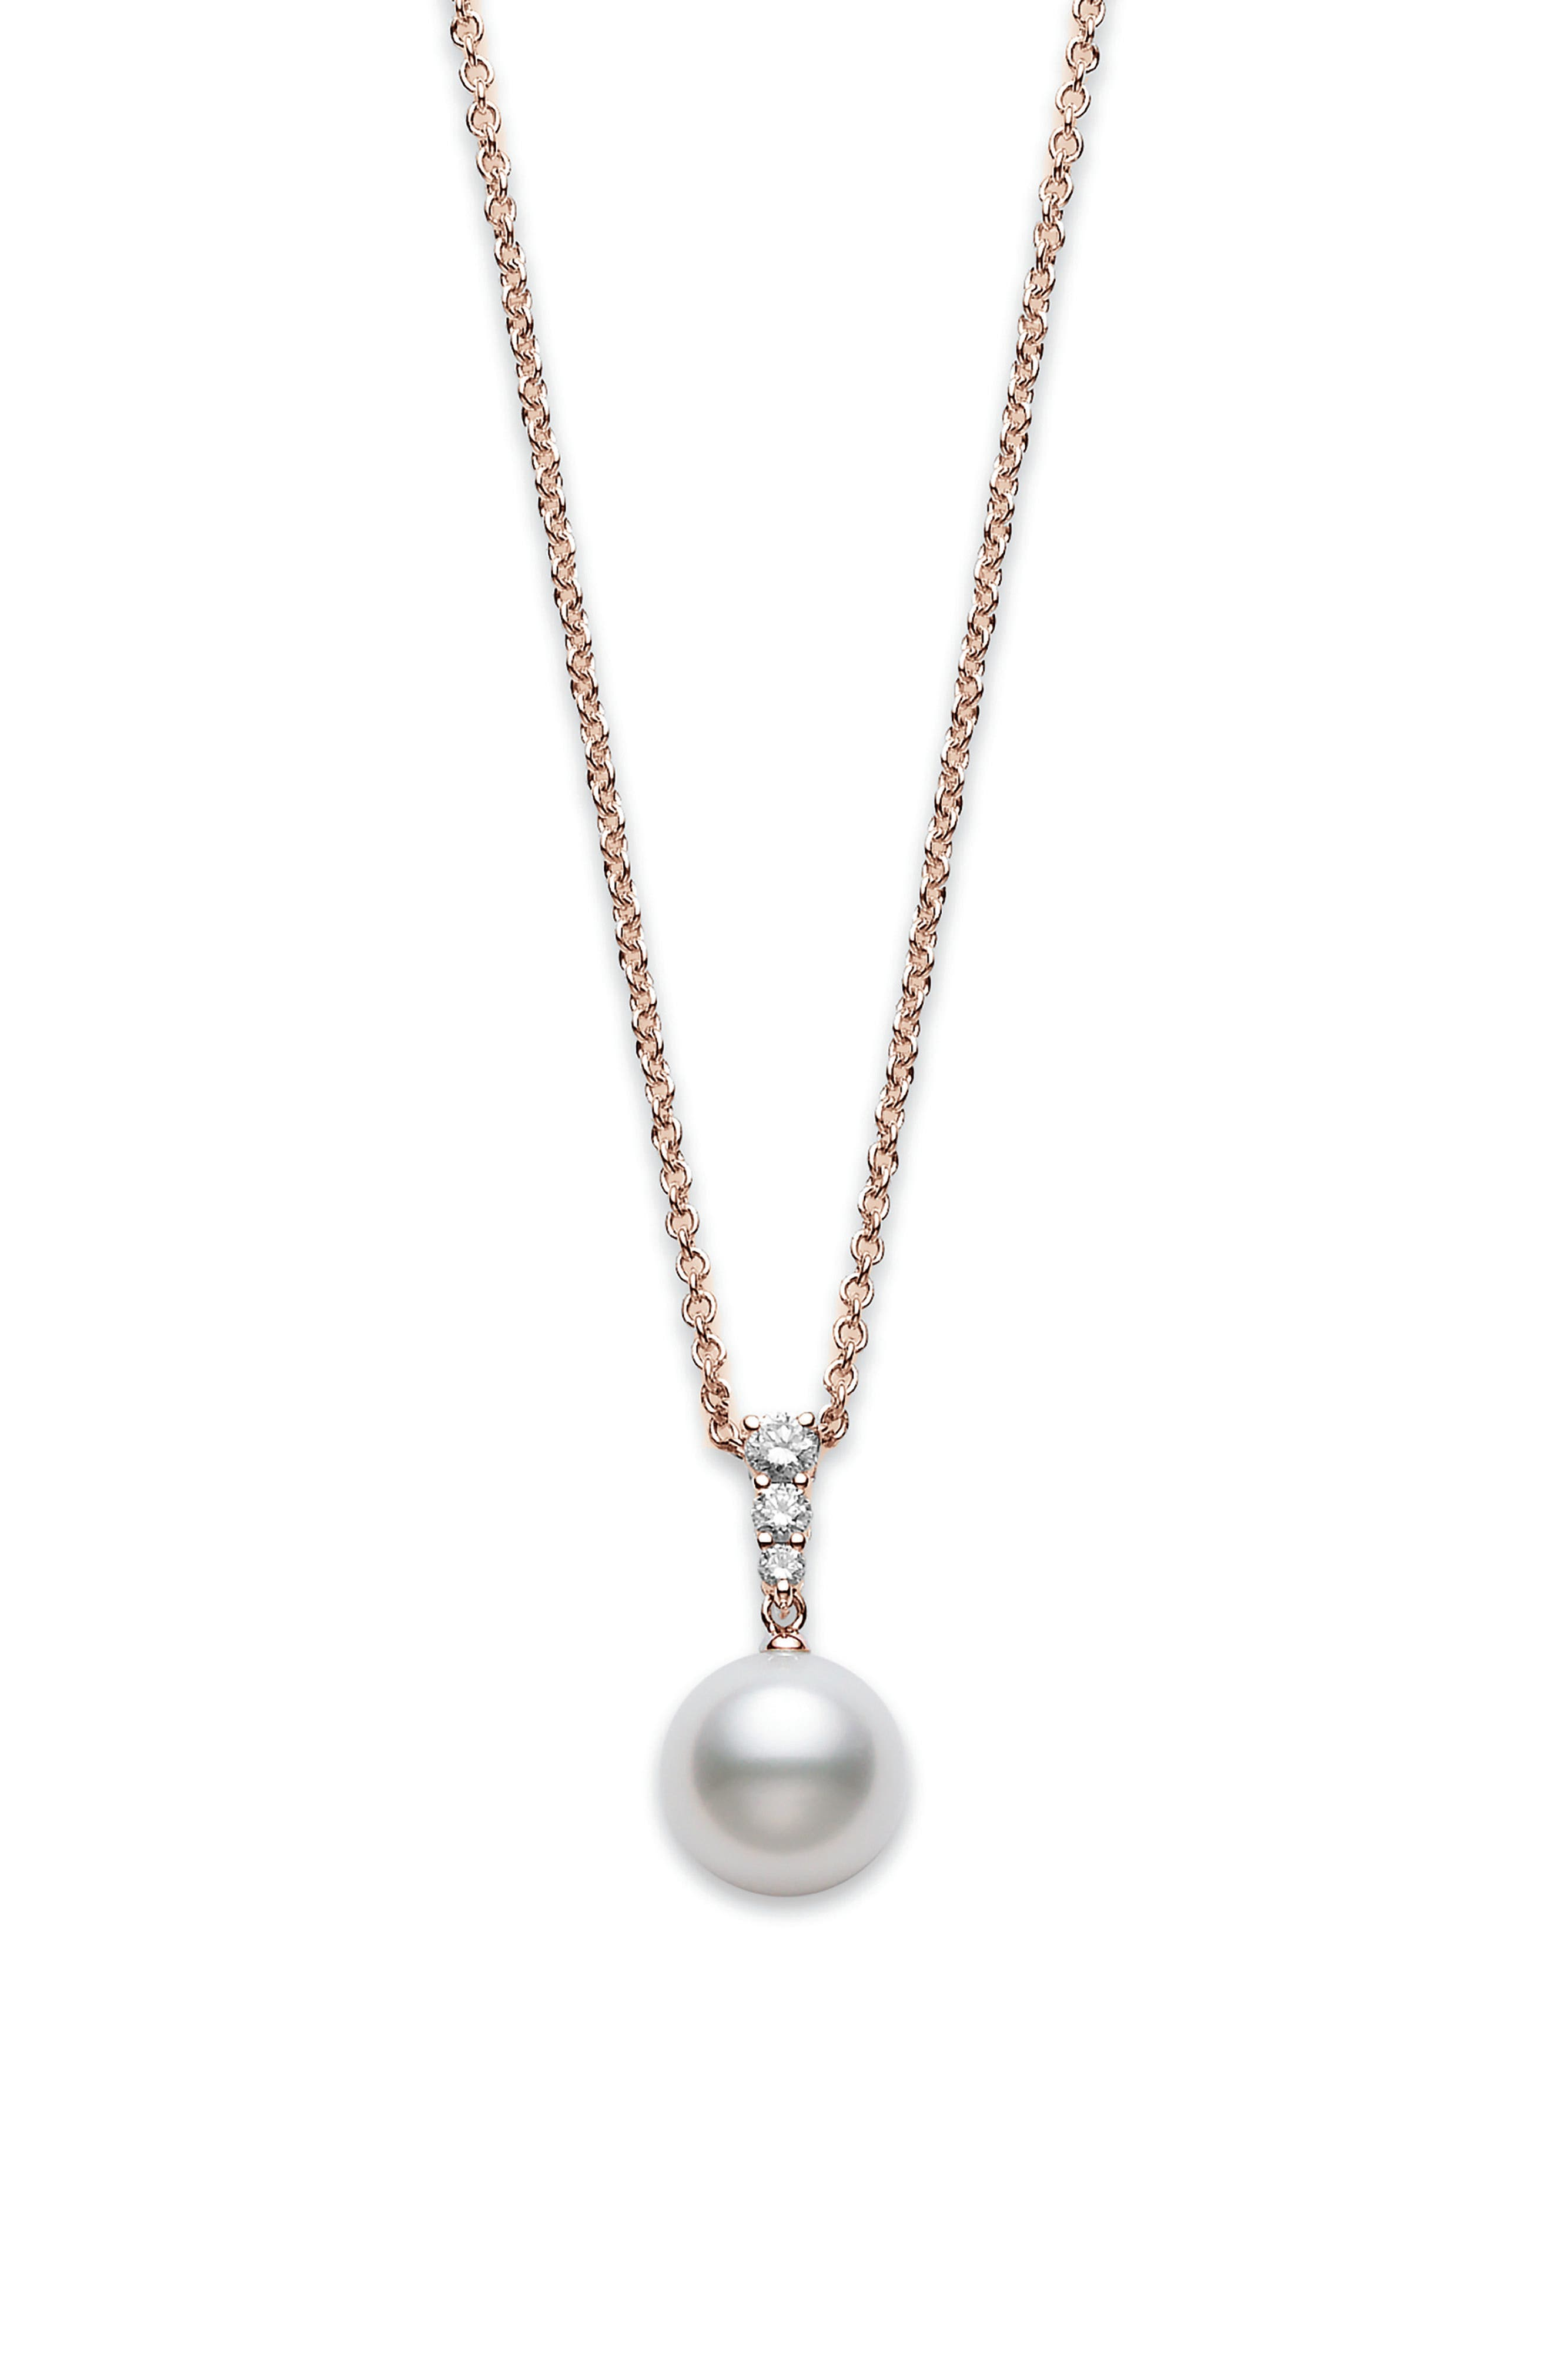 Morning Dew Diamond & Pearl Necklace